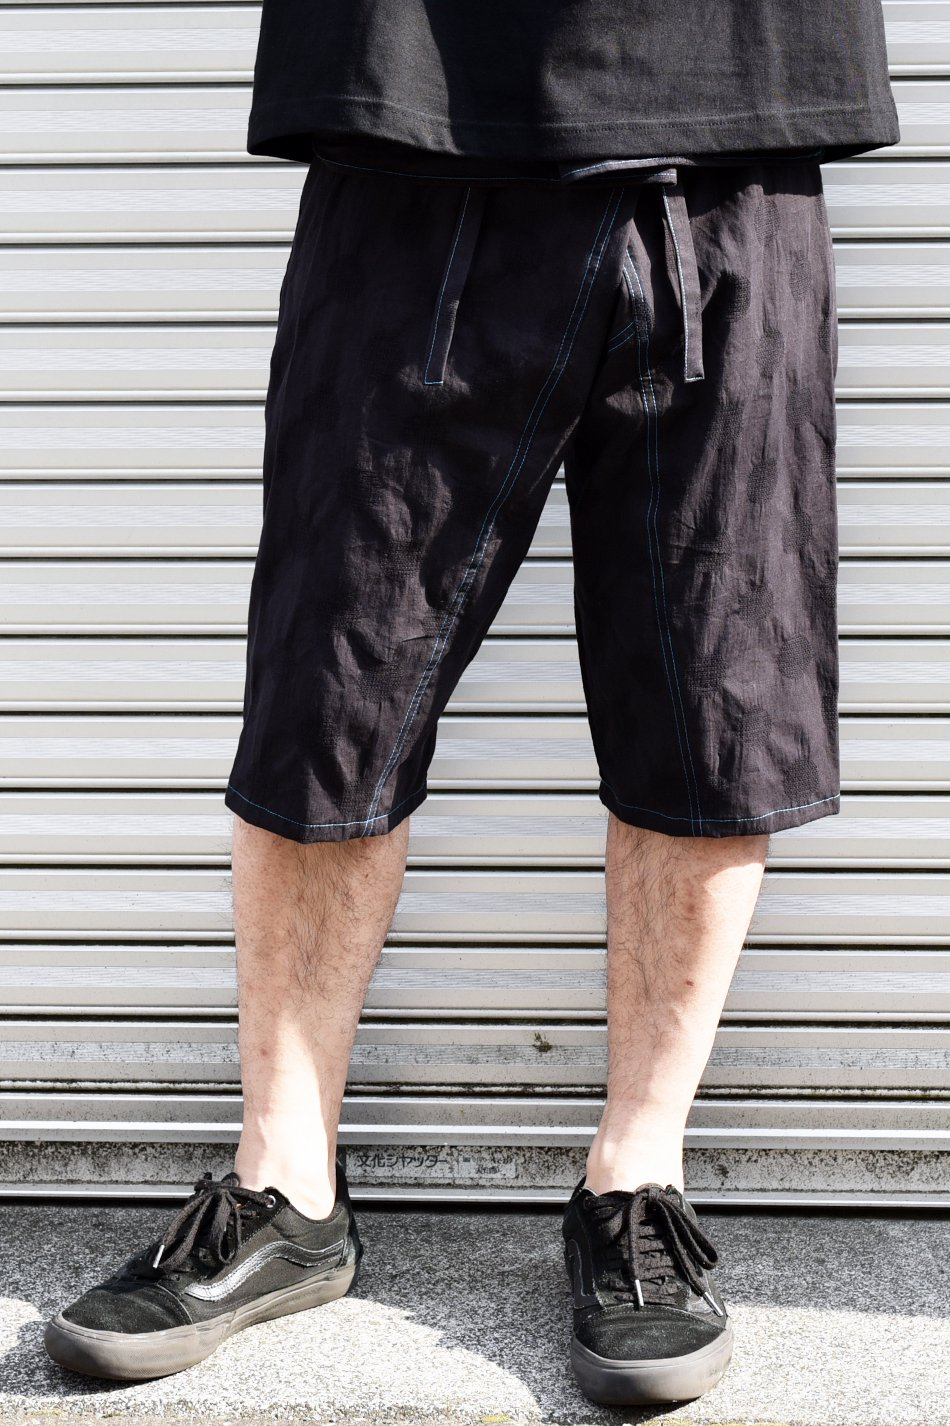 ARIGATO FAKKYU - アリガトファッキュ SHORT THAI PANTS / BLACK<img class='new_mark_img2' src='https://img.shop-pro.jp/img/new/icons5.gif' style='border:none;display:inline;margin:0px;padding:0px;width:auto;' />